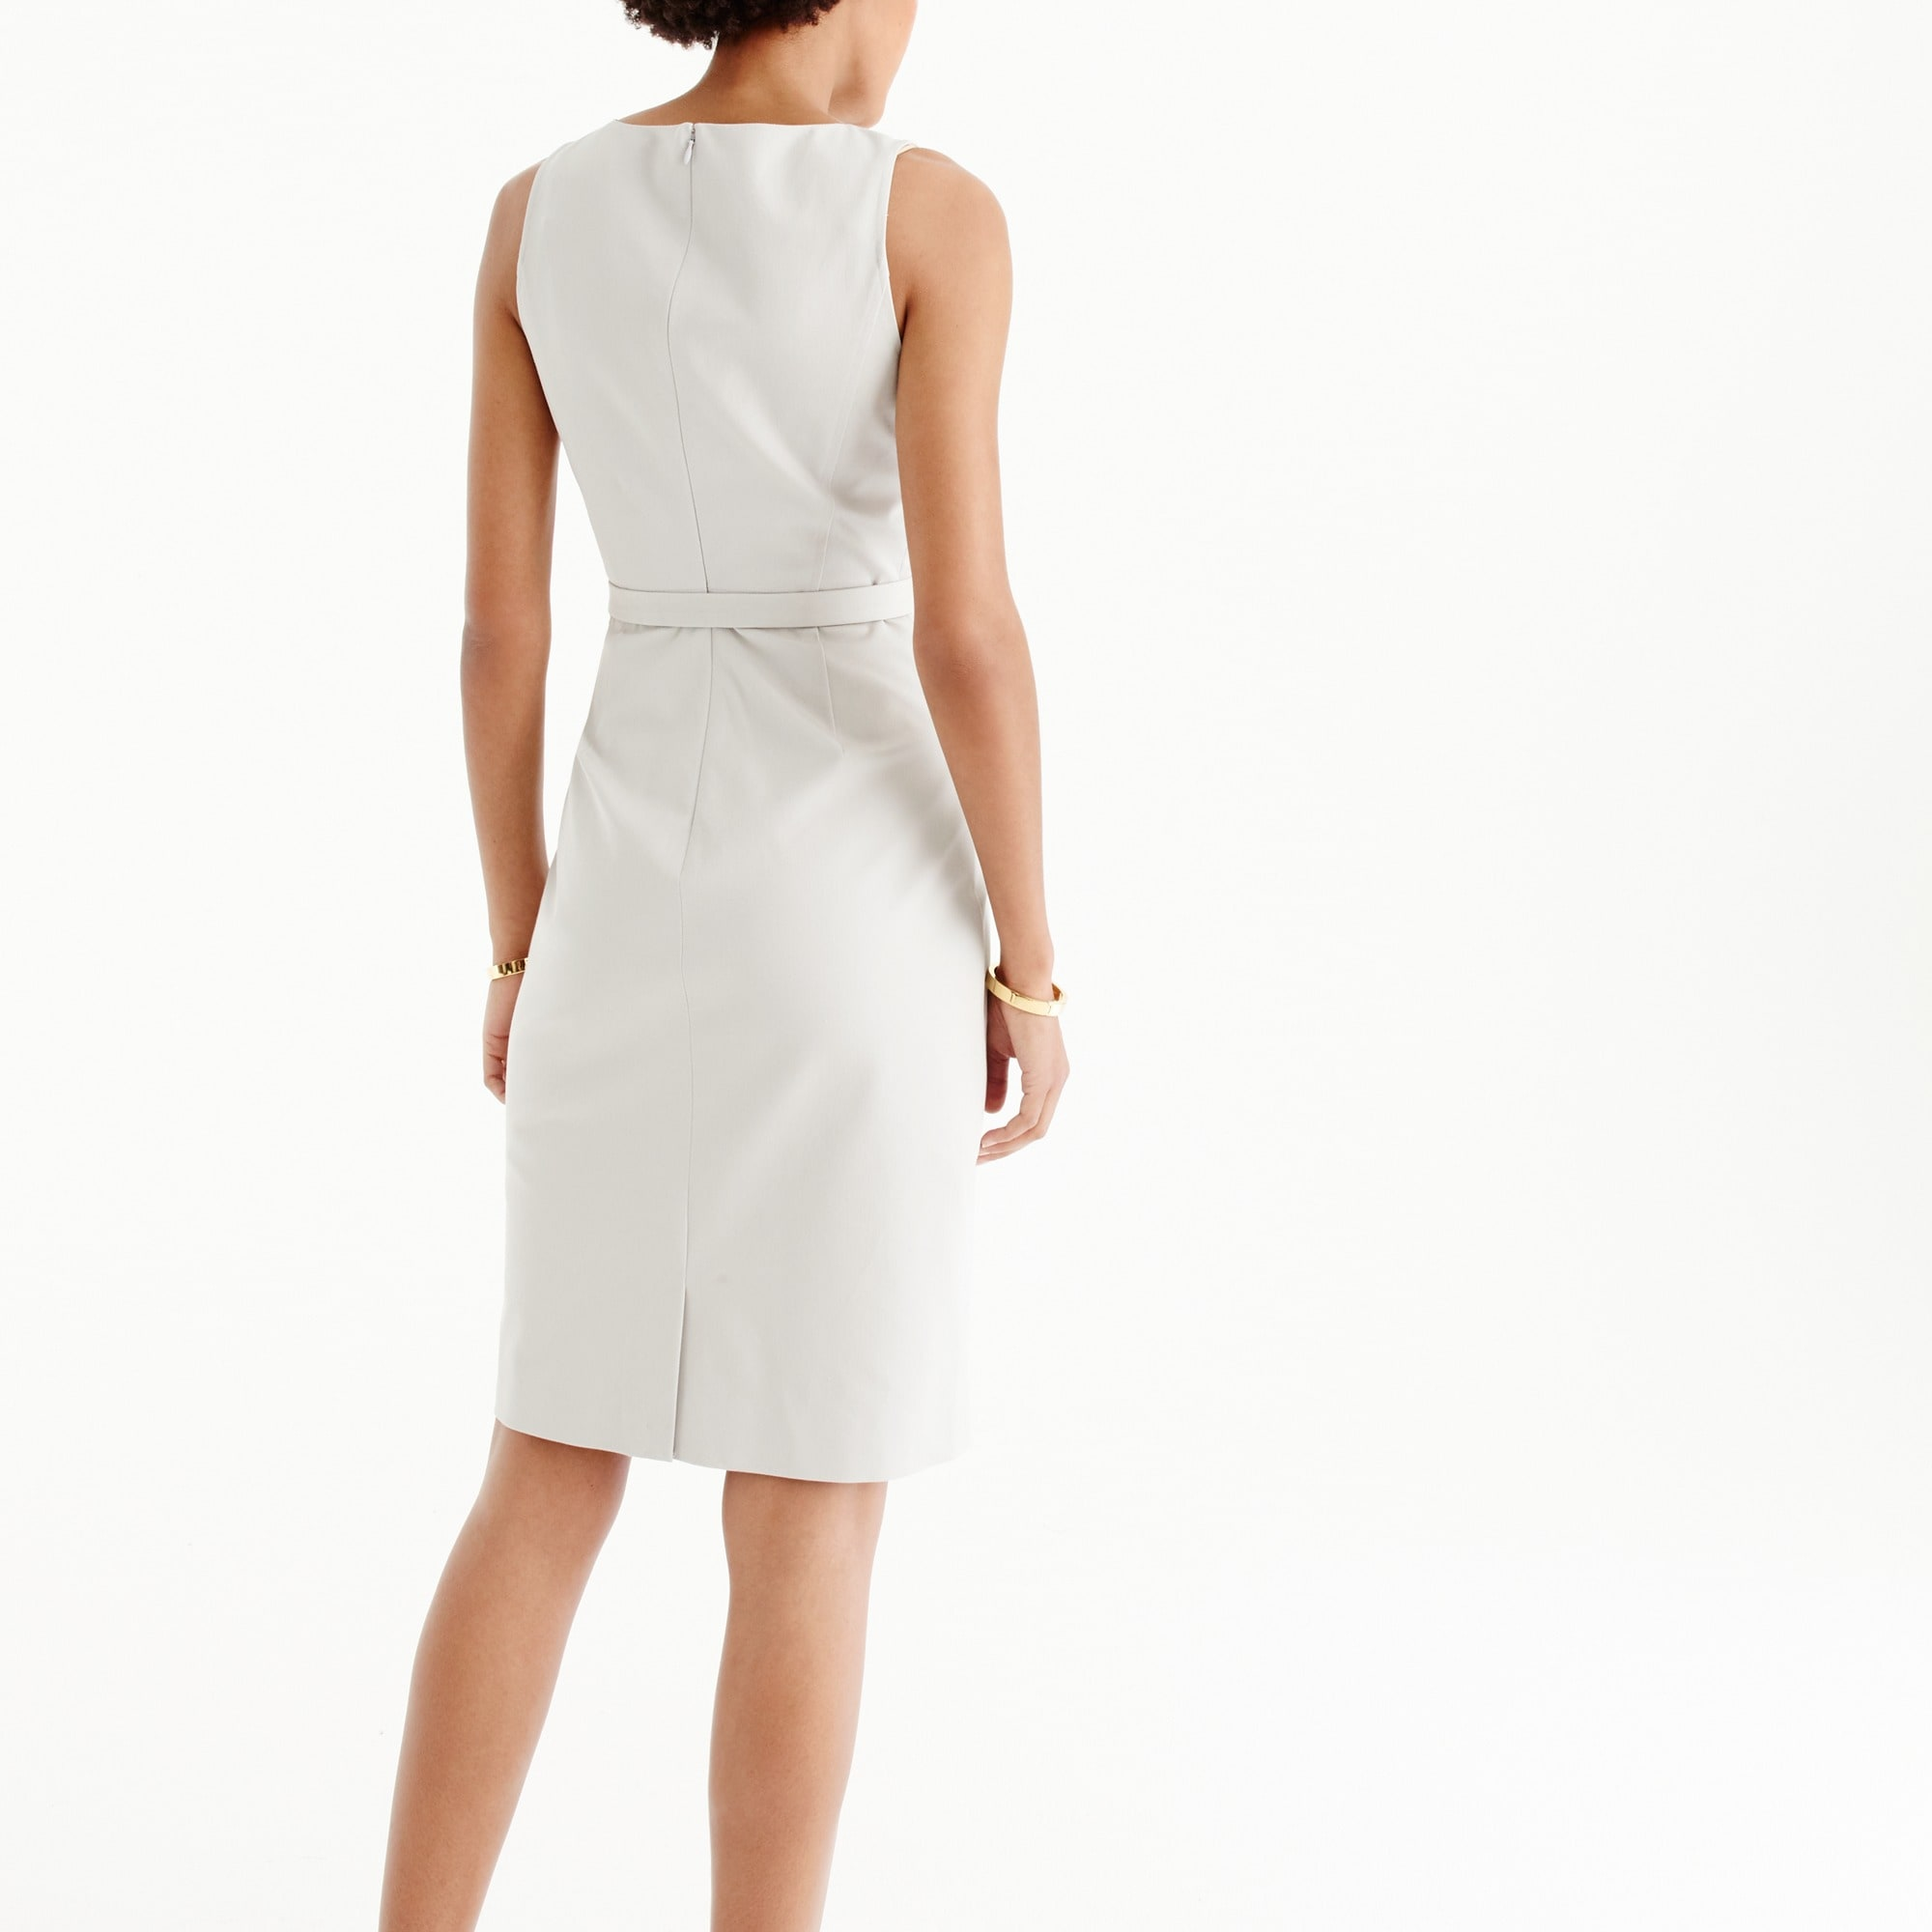 Image 3 for Petite belted sheath dress in two-way stretch cotton